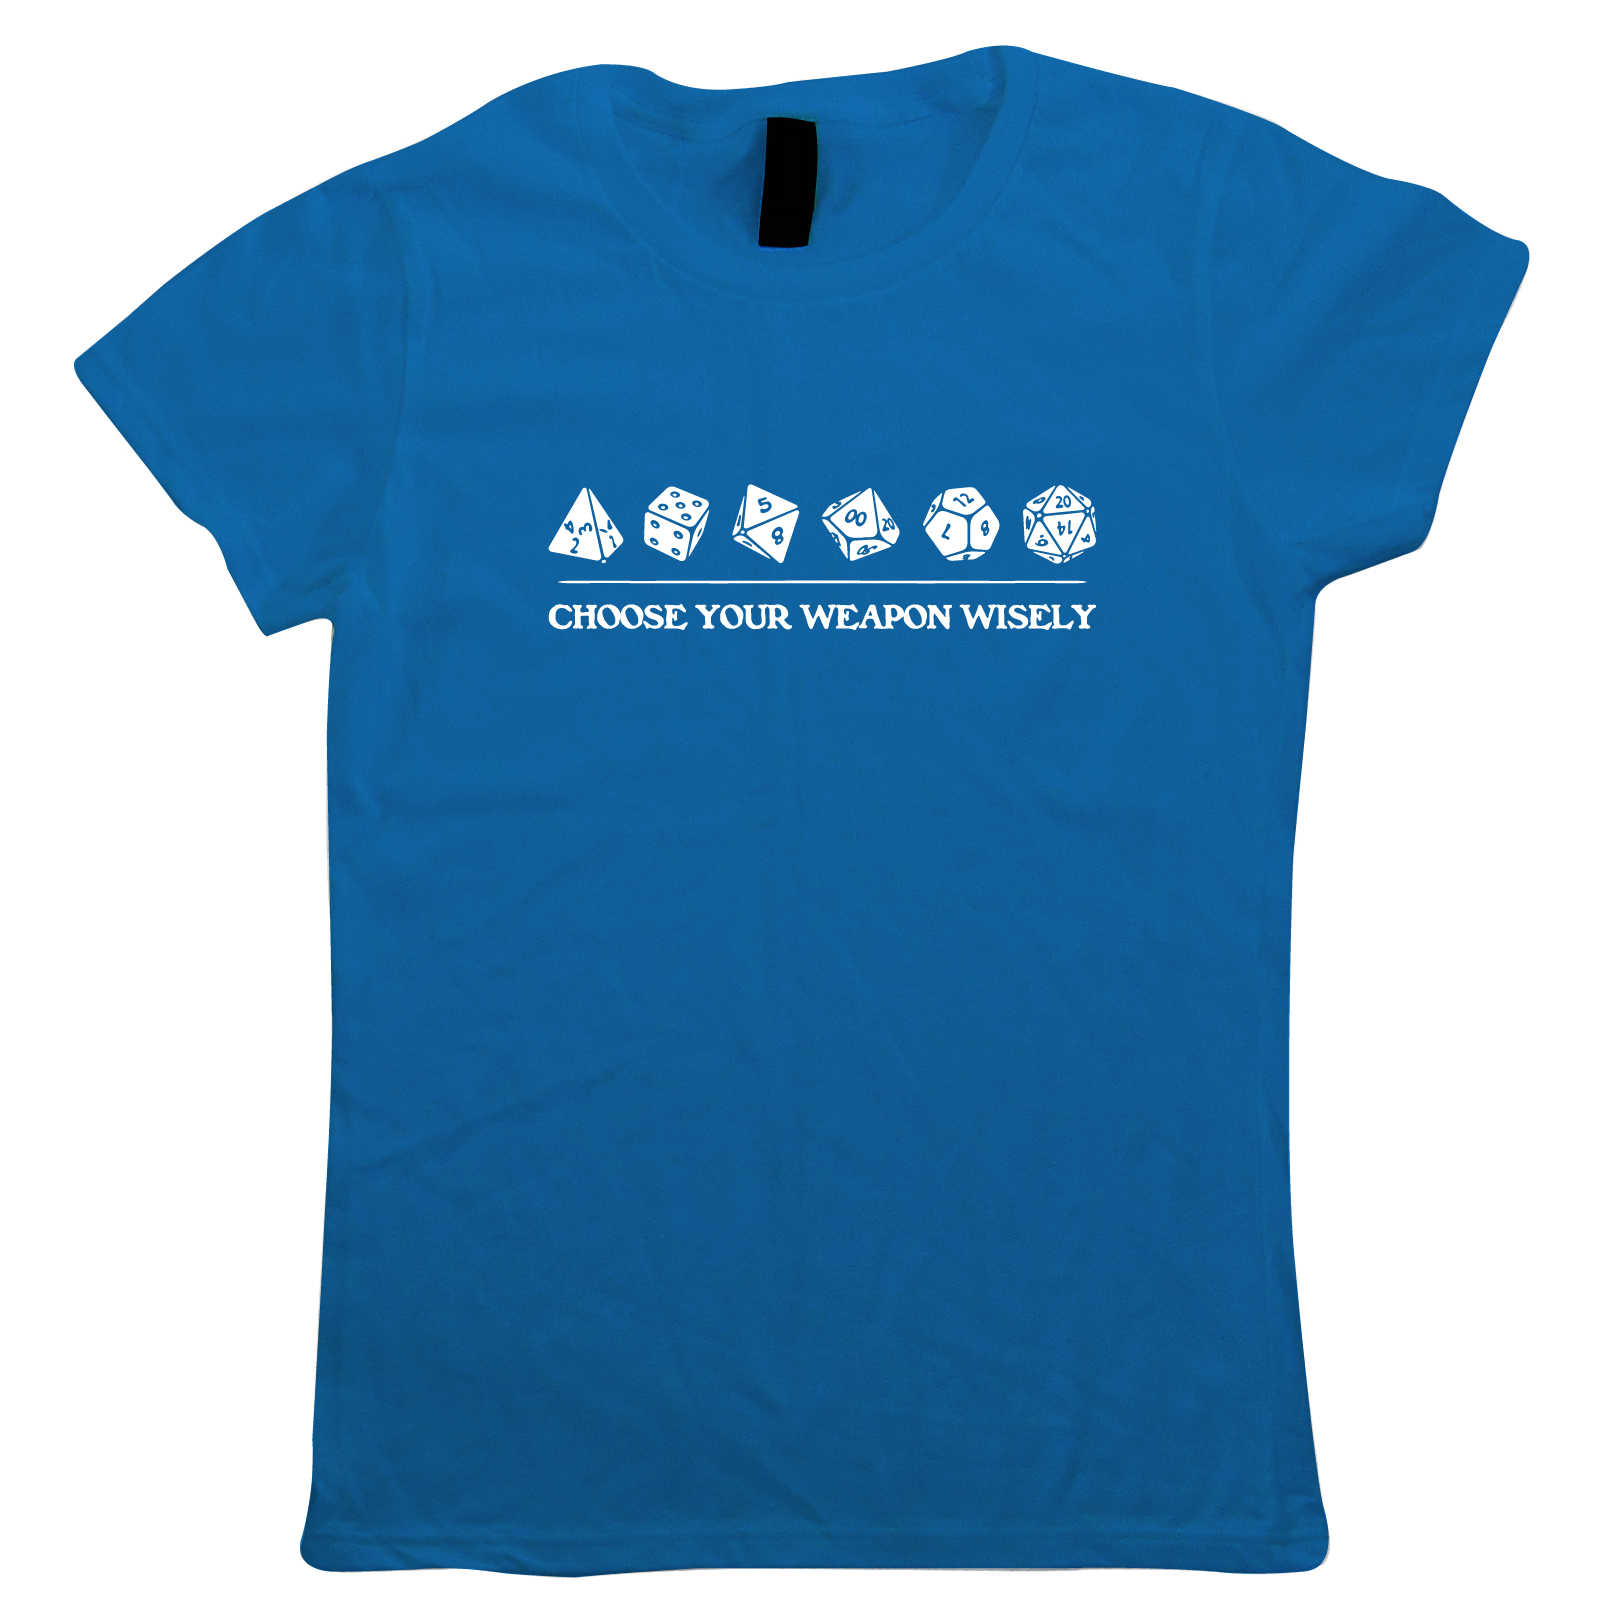 Choose-Your-Weapon-Wisely-Womens-T-Shirt-Hobbies-DND-Dungeon-Dragons-Gift-Her thumbnail 9